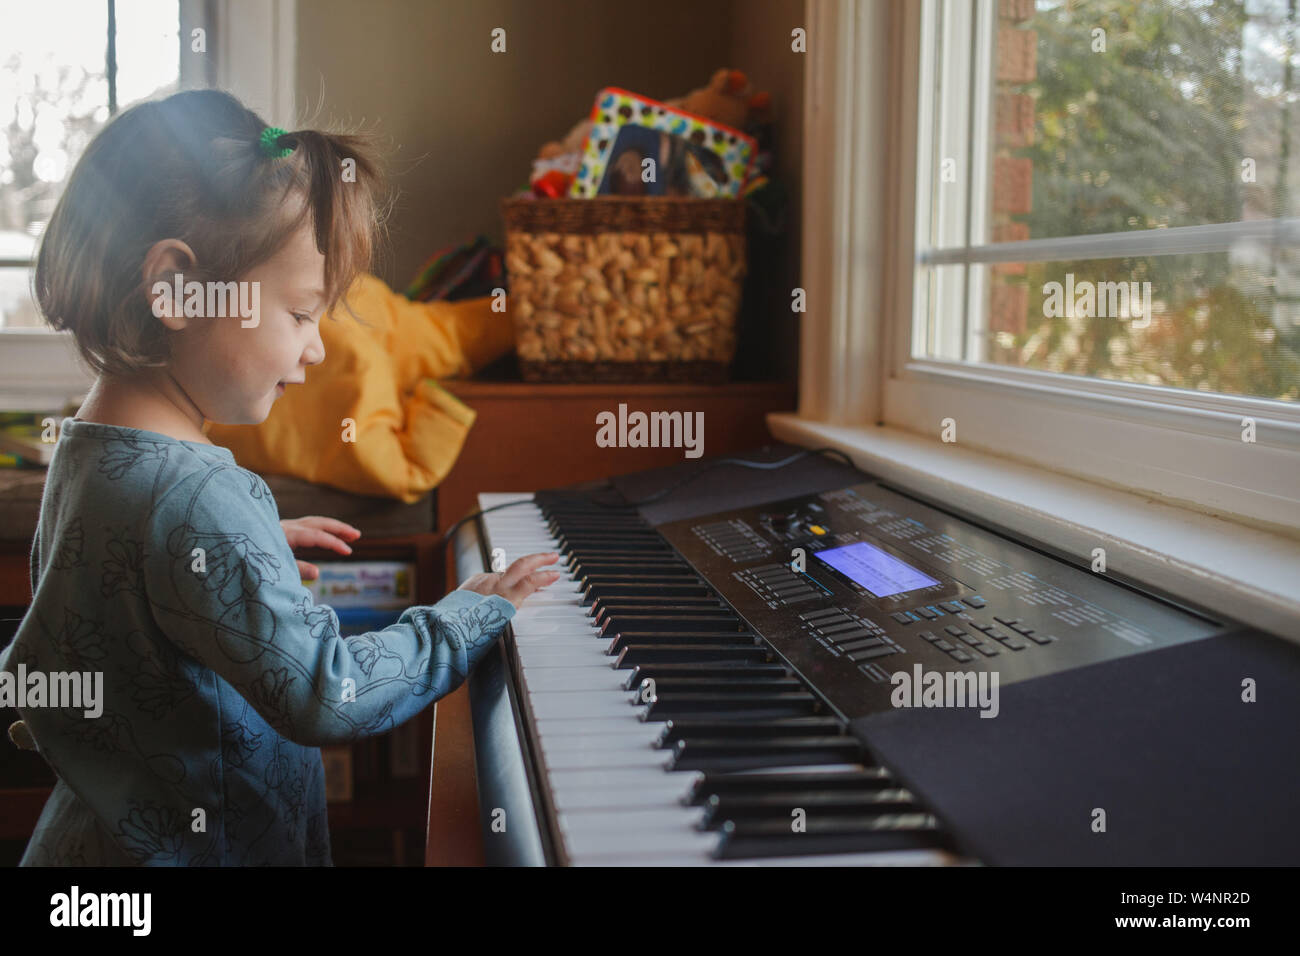 portrait of a cute little child playing piano in front of a window Stock Photo